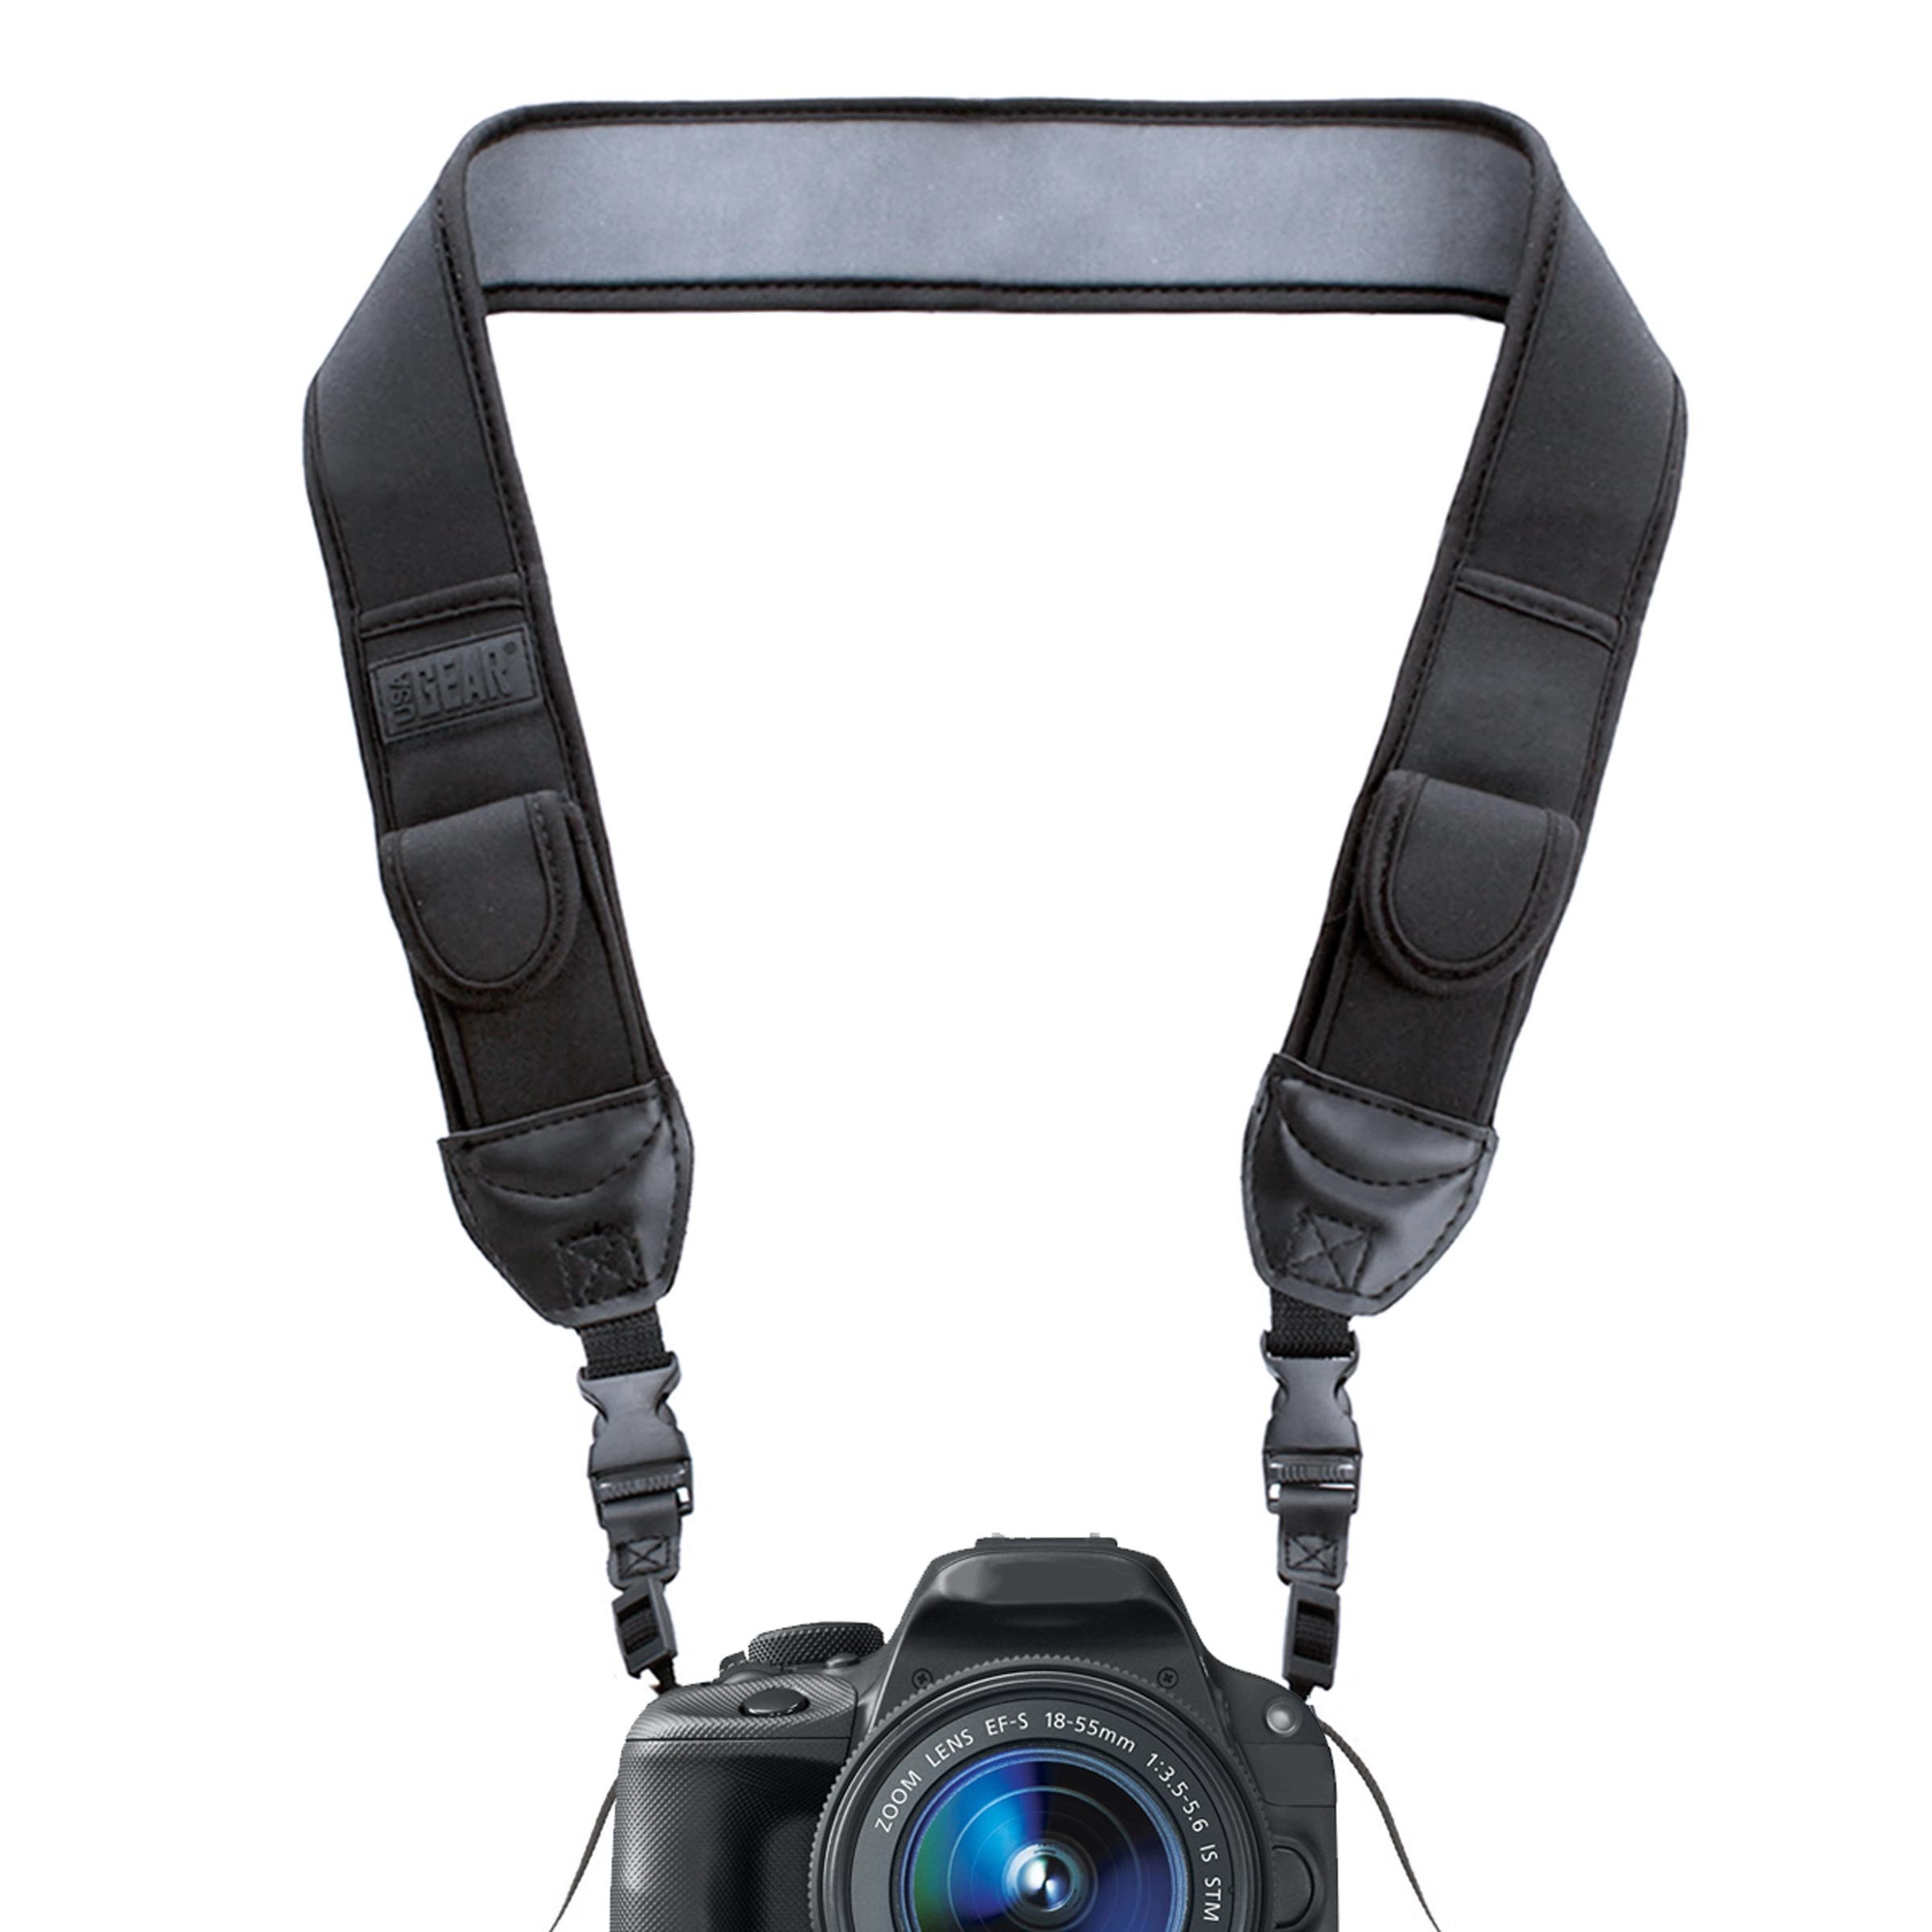 USA Gear TrueSHOT Camera Strap with Black Neoprene Pattern, Accessory Pockets and Quick Release Buckles - Compatible with Canon, Nikon, Sony and More DSLR, Mirrorless, Instant Cameras by USA Gear